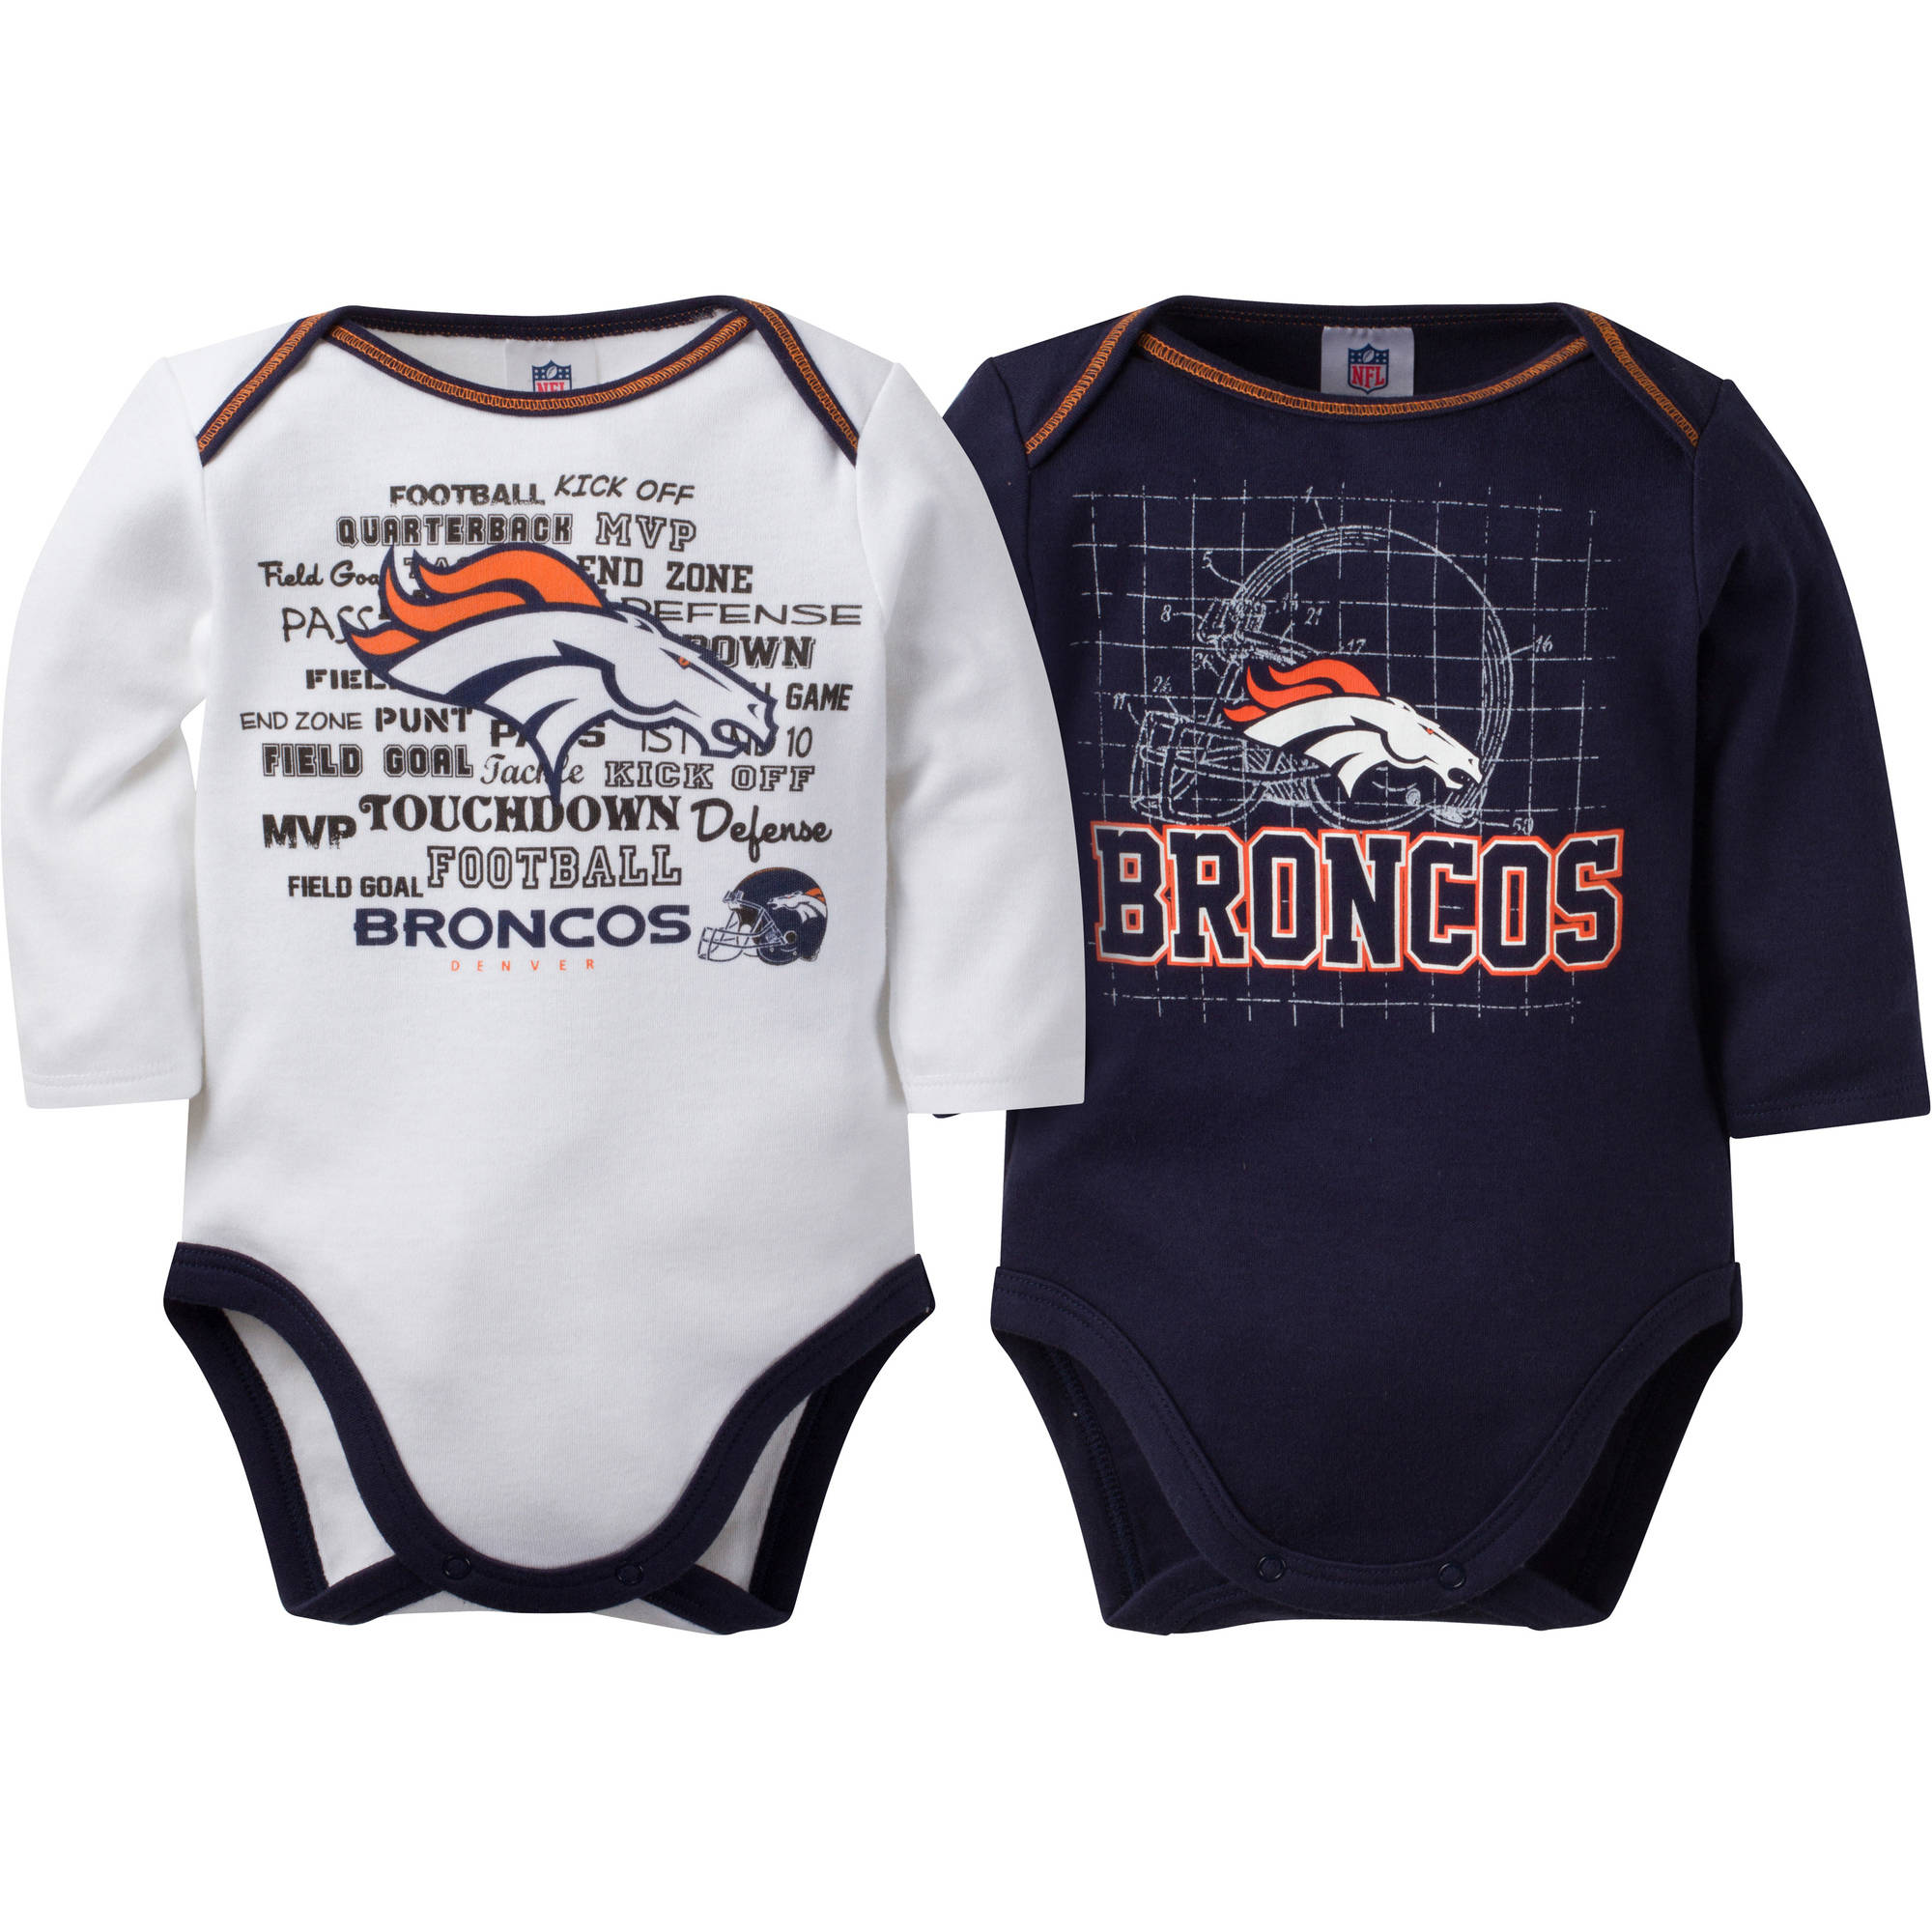 NFL Denver Broncos Baby Boys Long Sleeve Bodysuit Set, 2-Pack